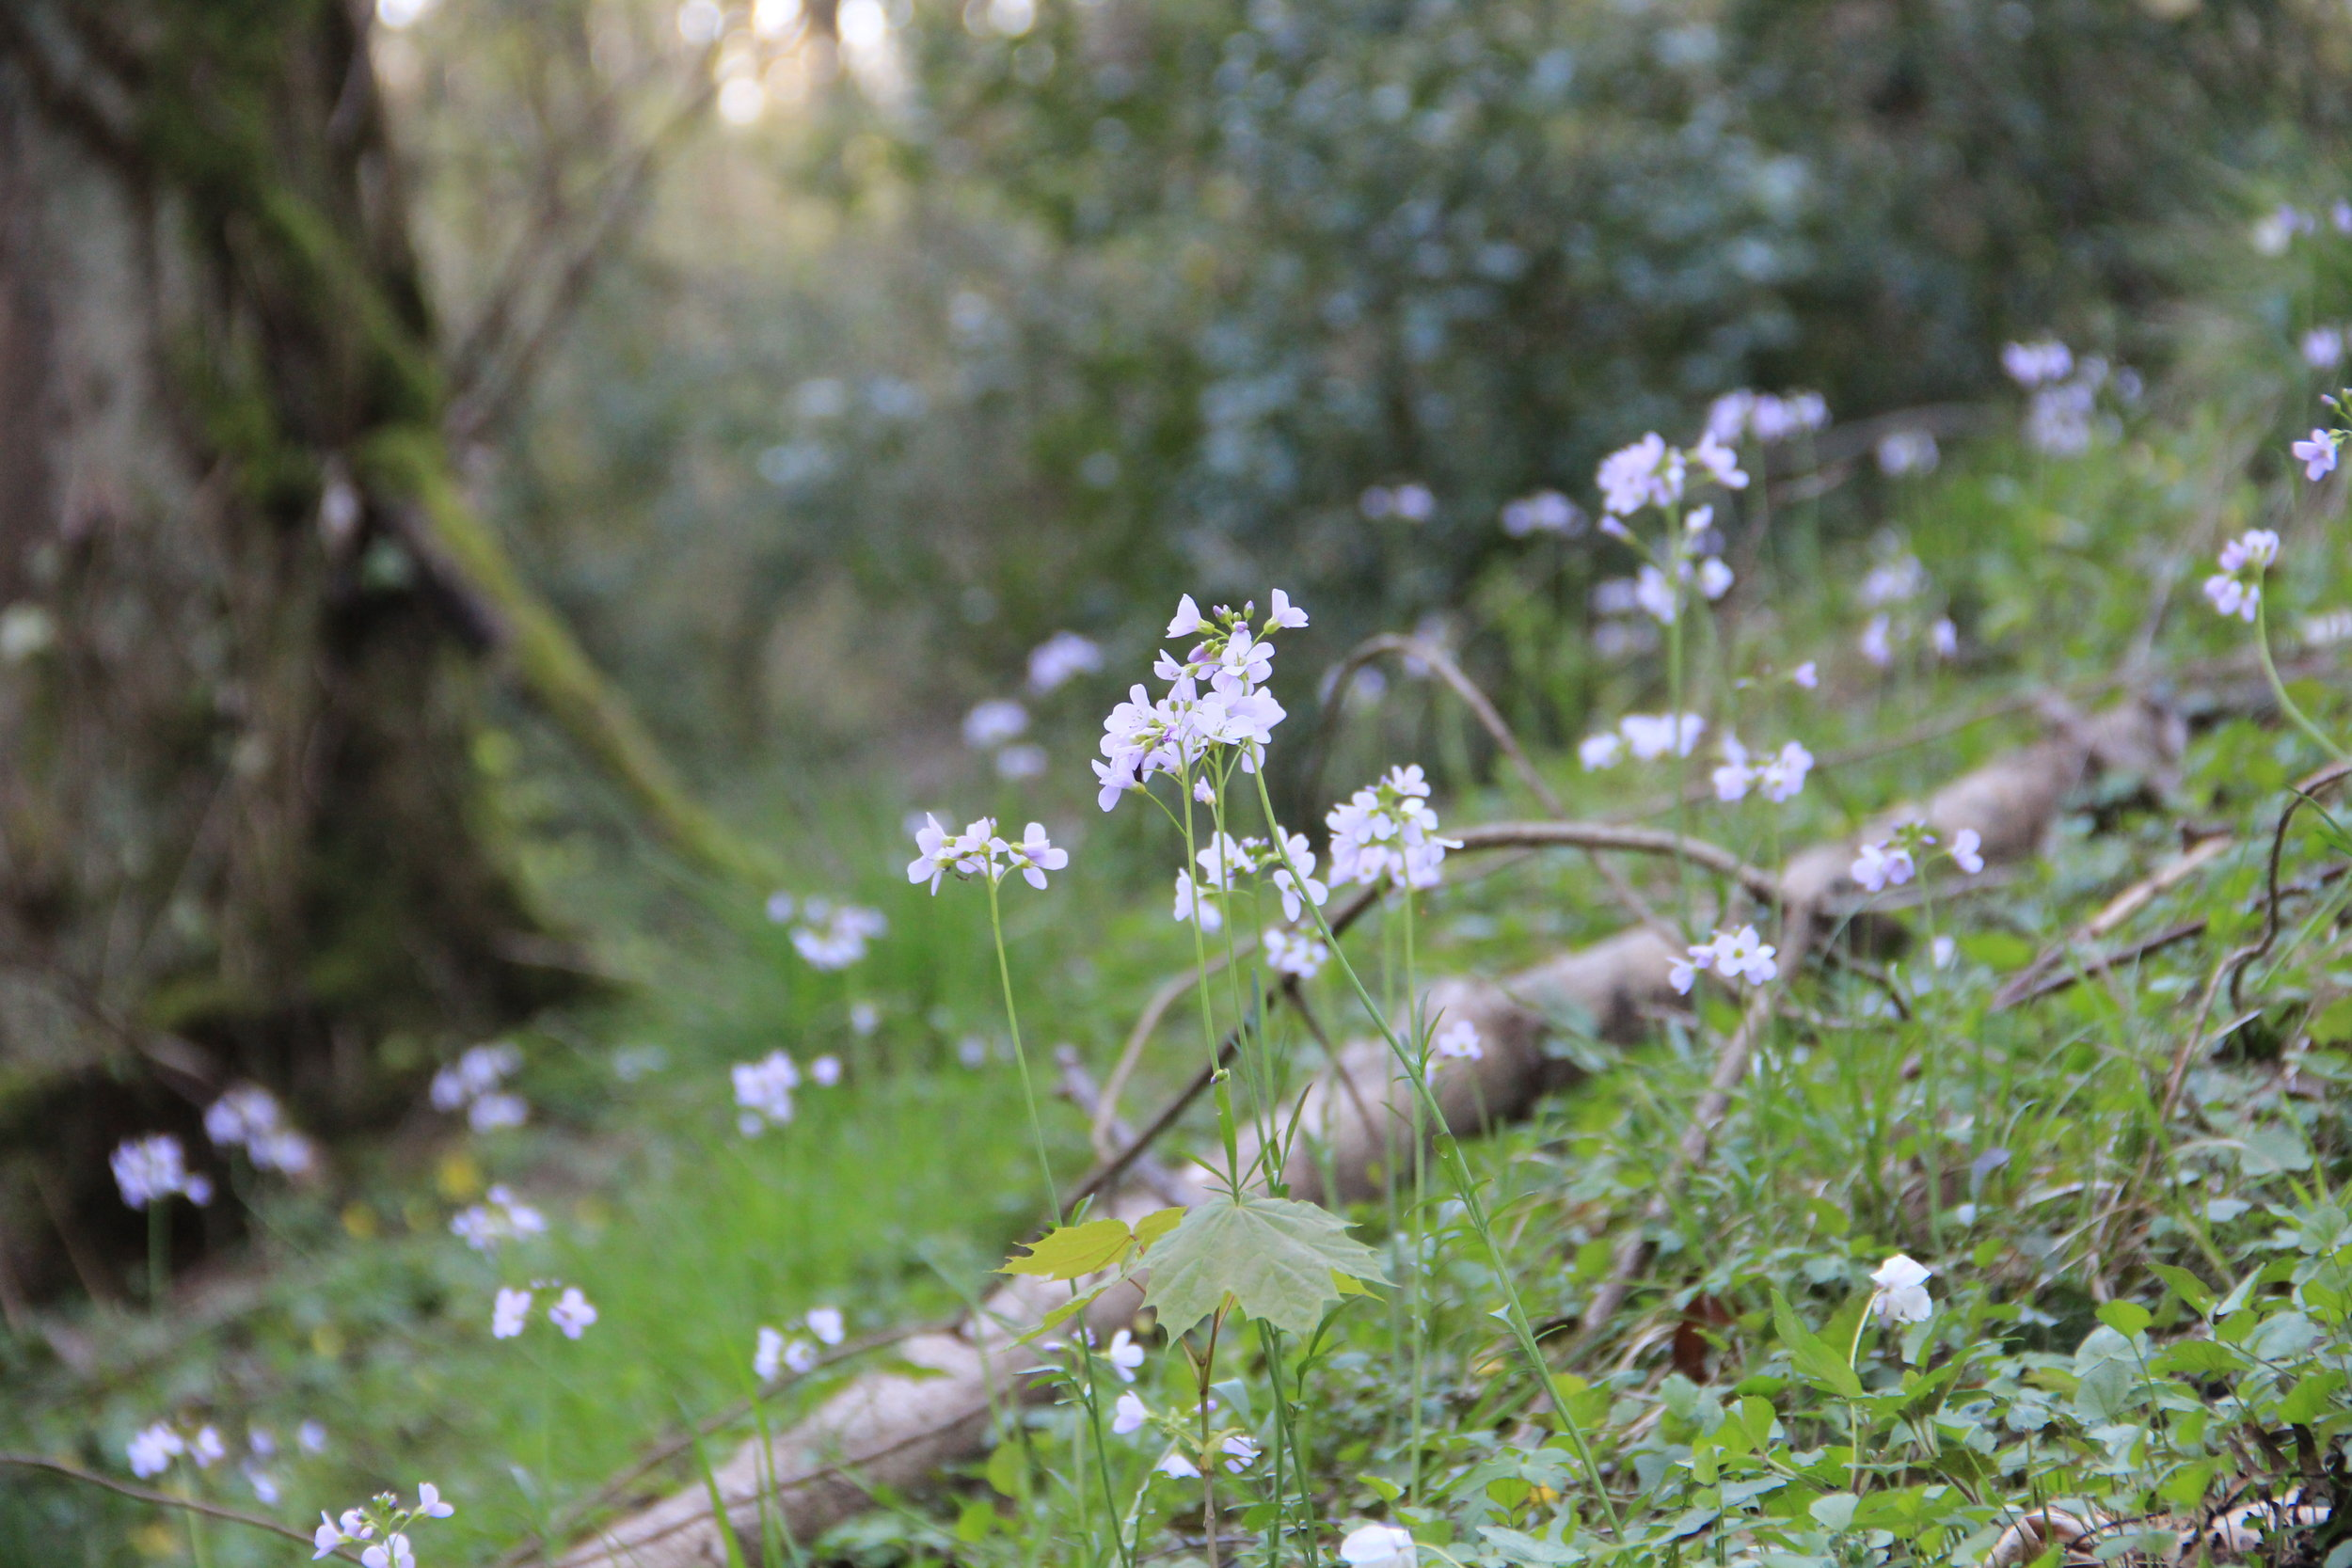 Cuckoo flower in full bloom